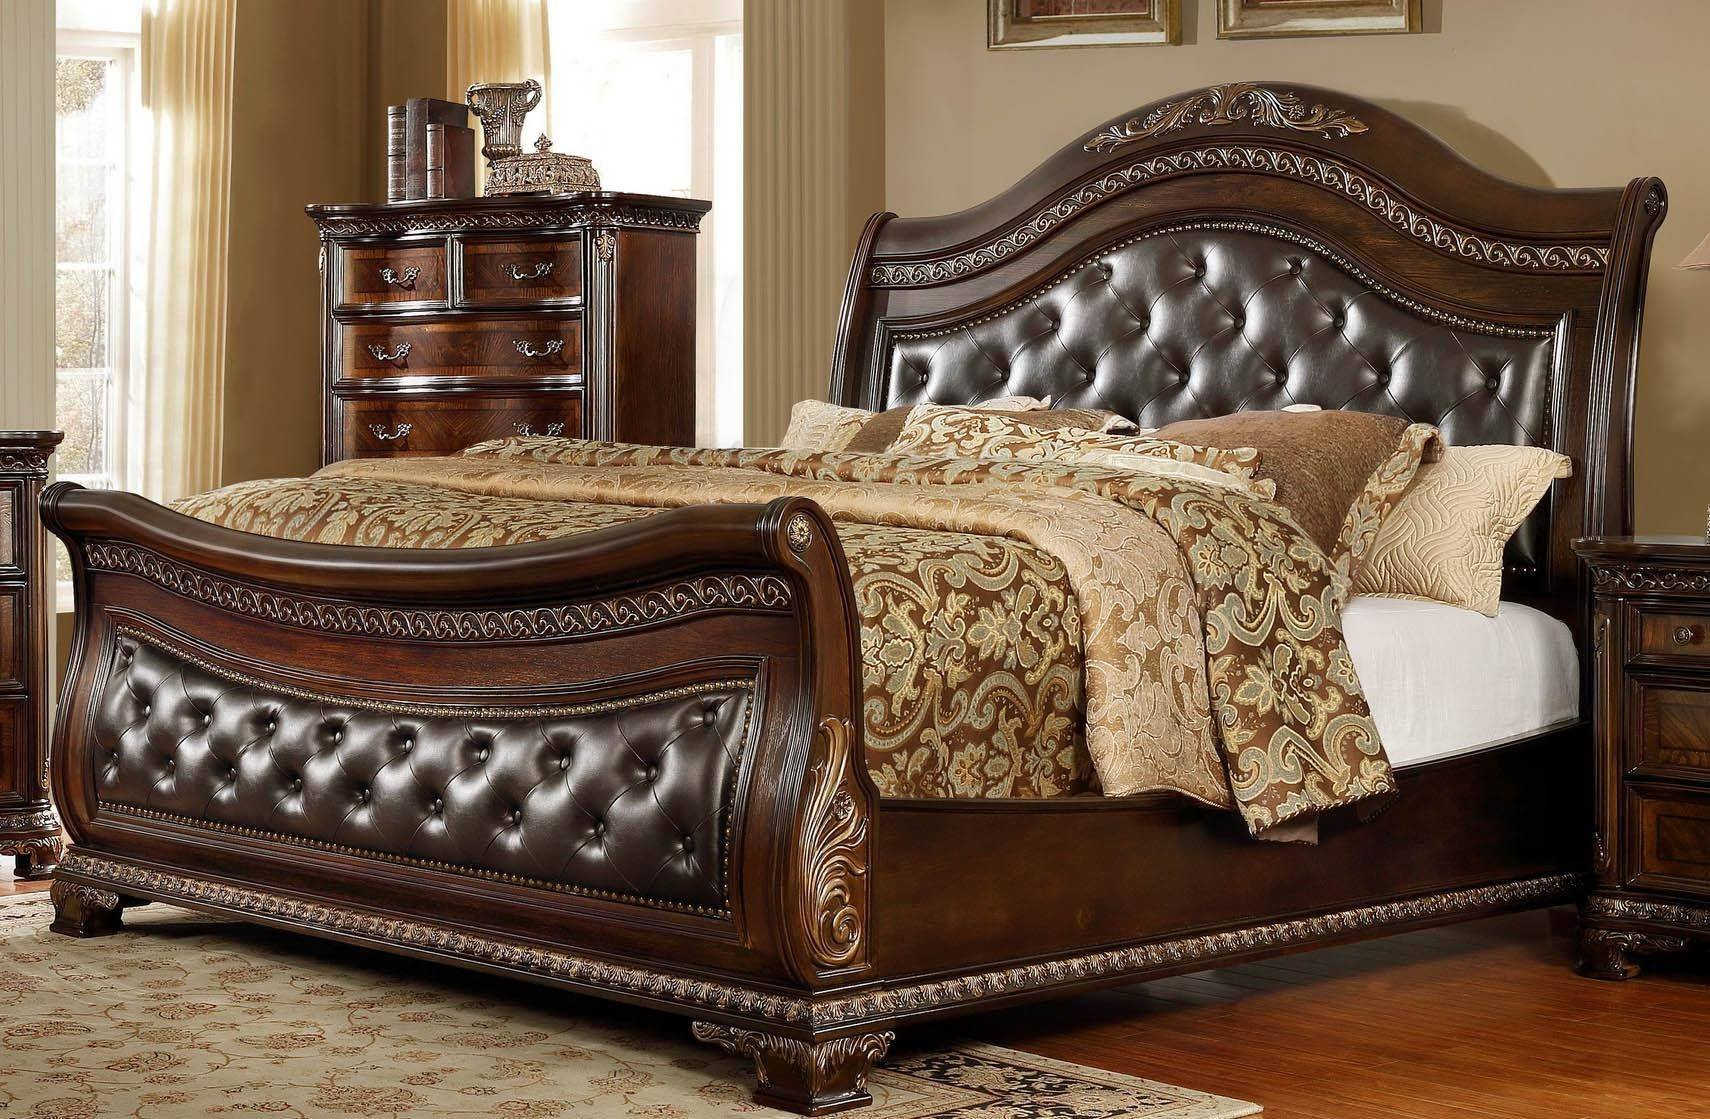 King Size Oak Bedroom Set Fresh Mcferran B9588 King Sleigh Bed In Oak Veneers Dark Cherry Finish Leather